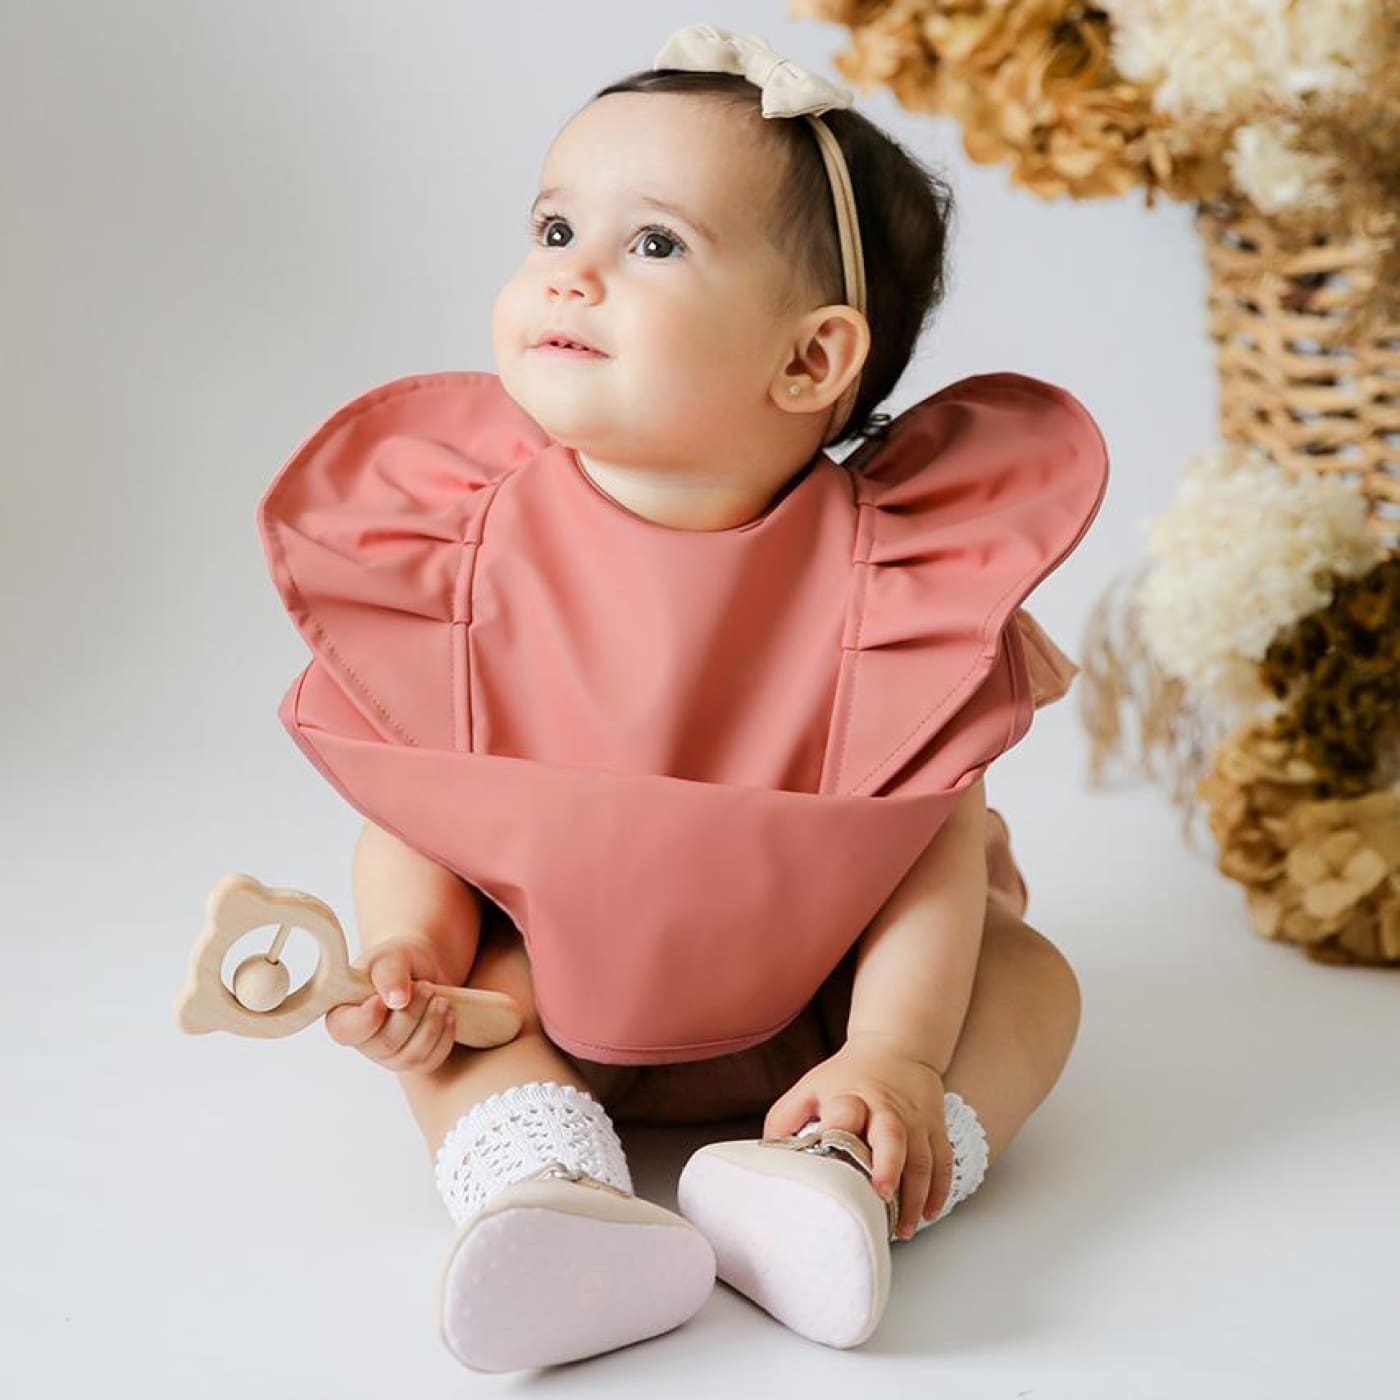 Snuggle Hunny Kids Snuggle Waterproof Bib - Terracotta - Terracotta - NURSING & FEEDING - BIBS/BURP CLOTHS